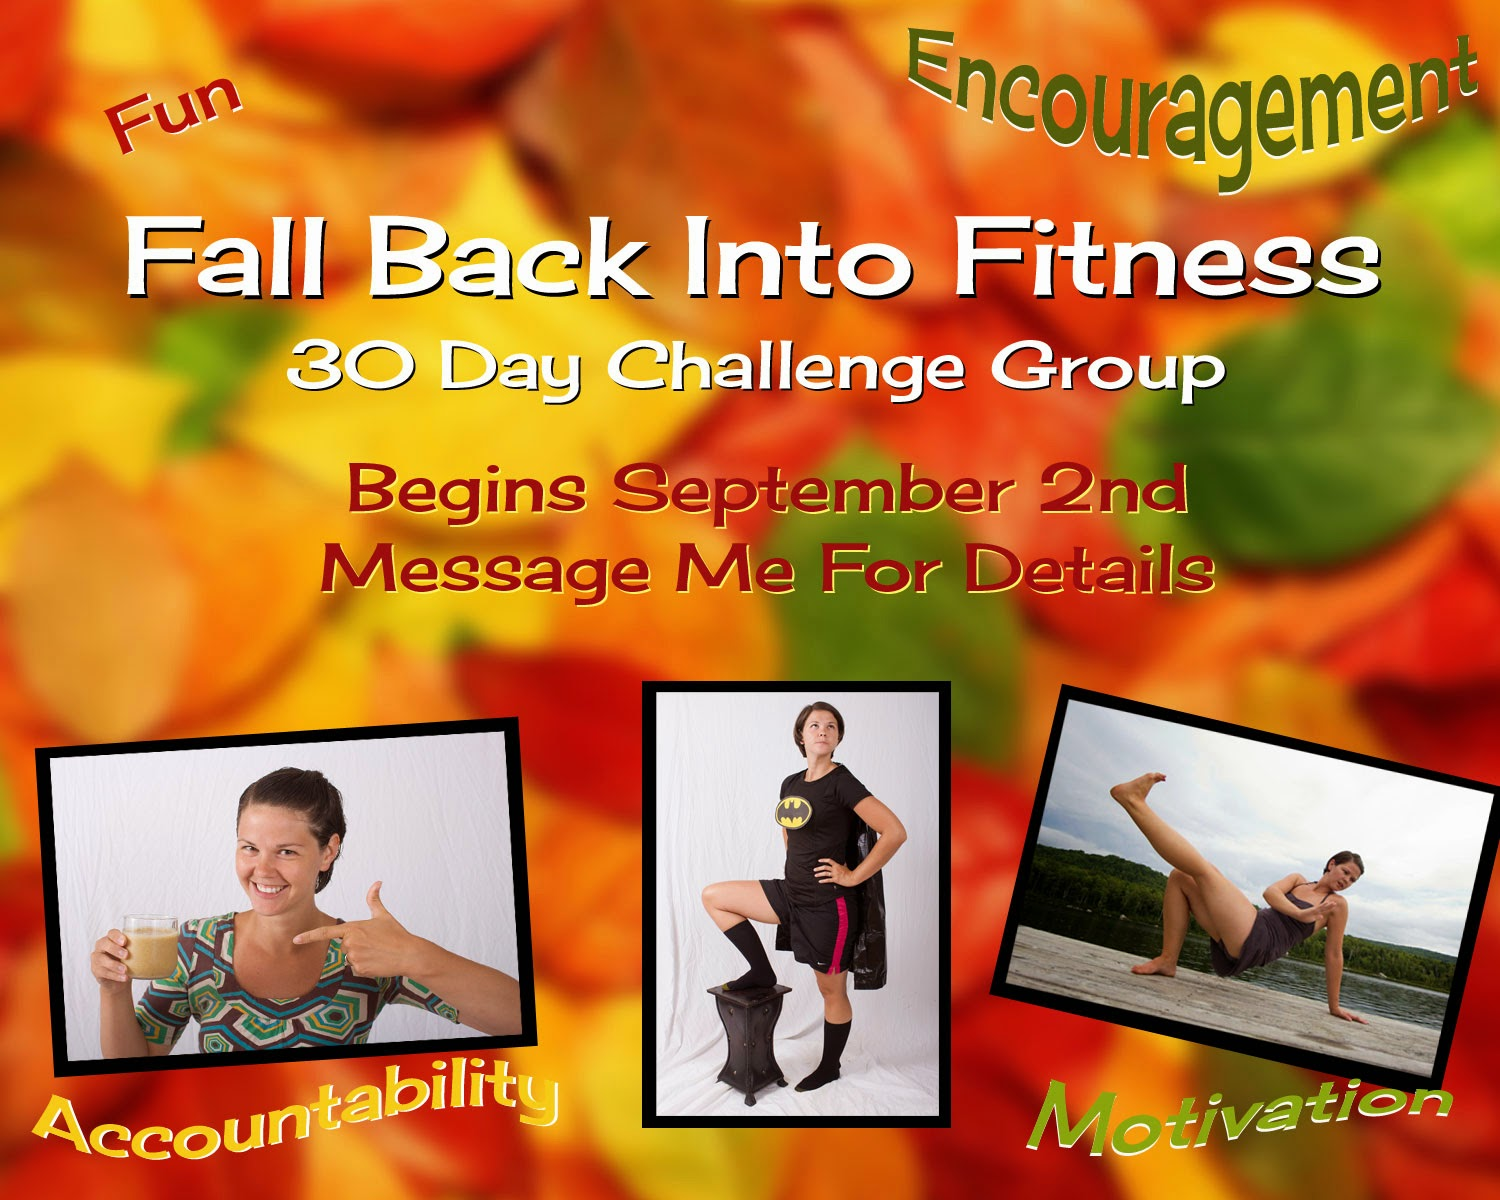 Fall Back Into Fitness Challenge Group